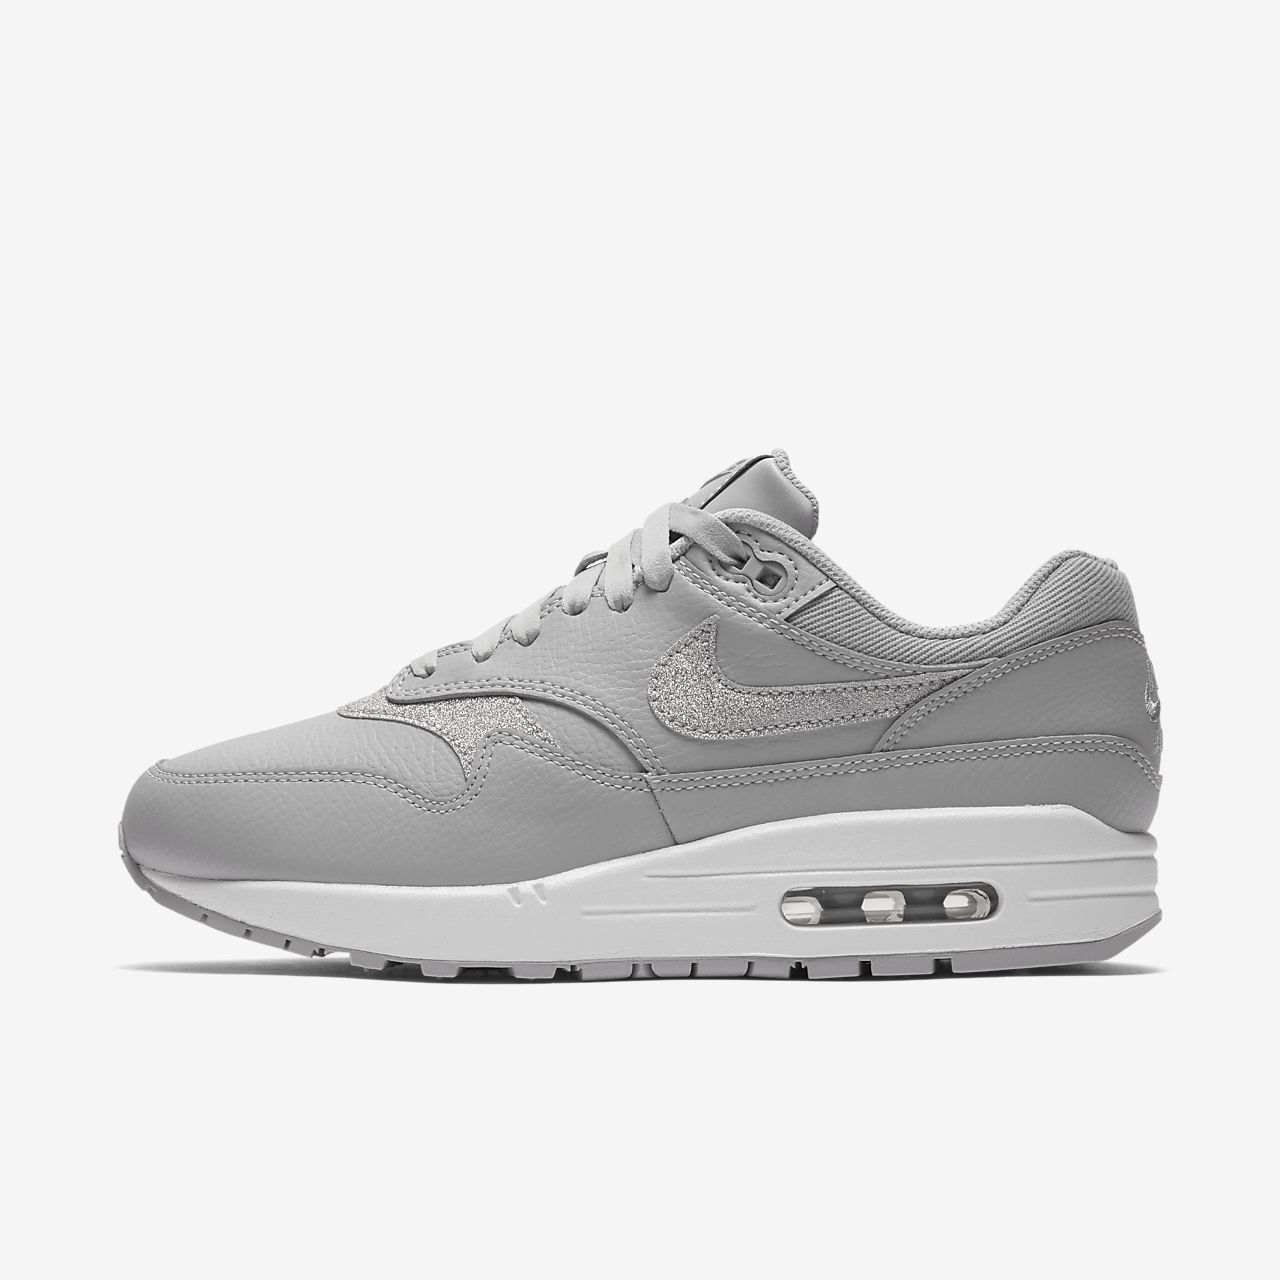 buy popular a0113 69040 ... Chaussure Nike Air Max 1 SE Glitter pour Femme